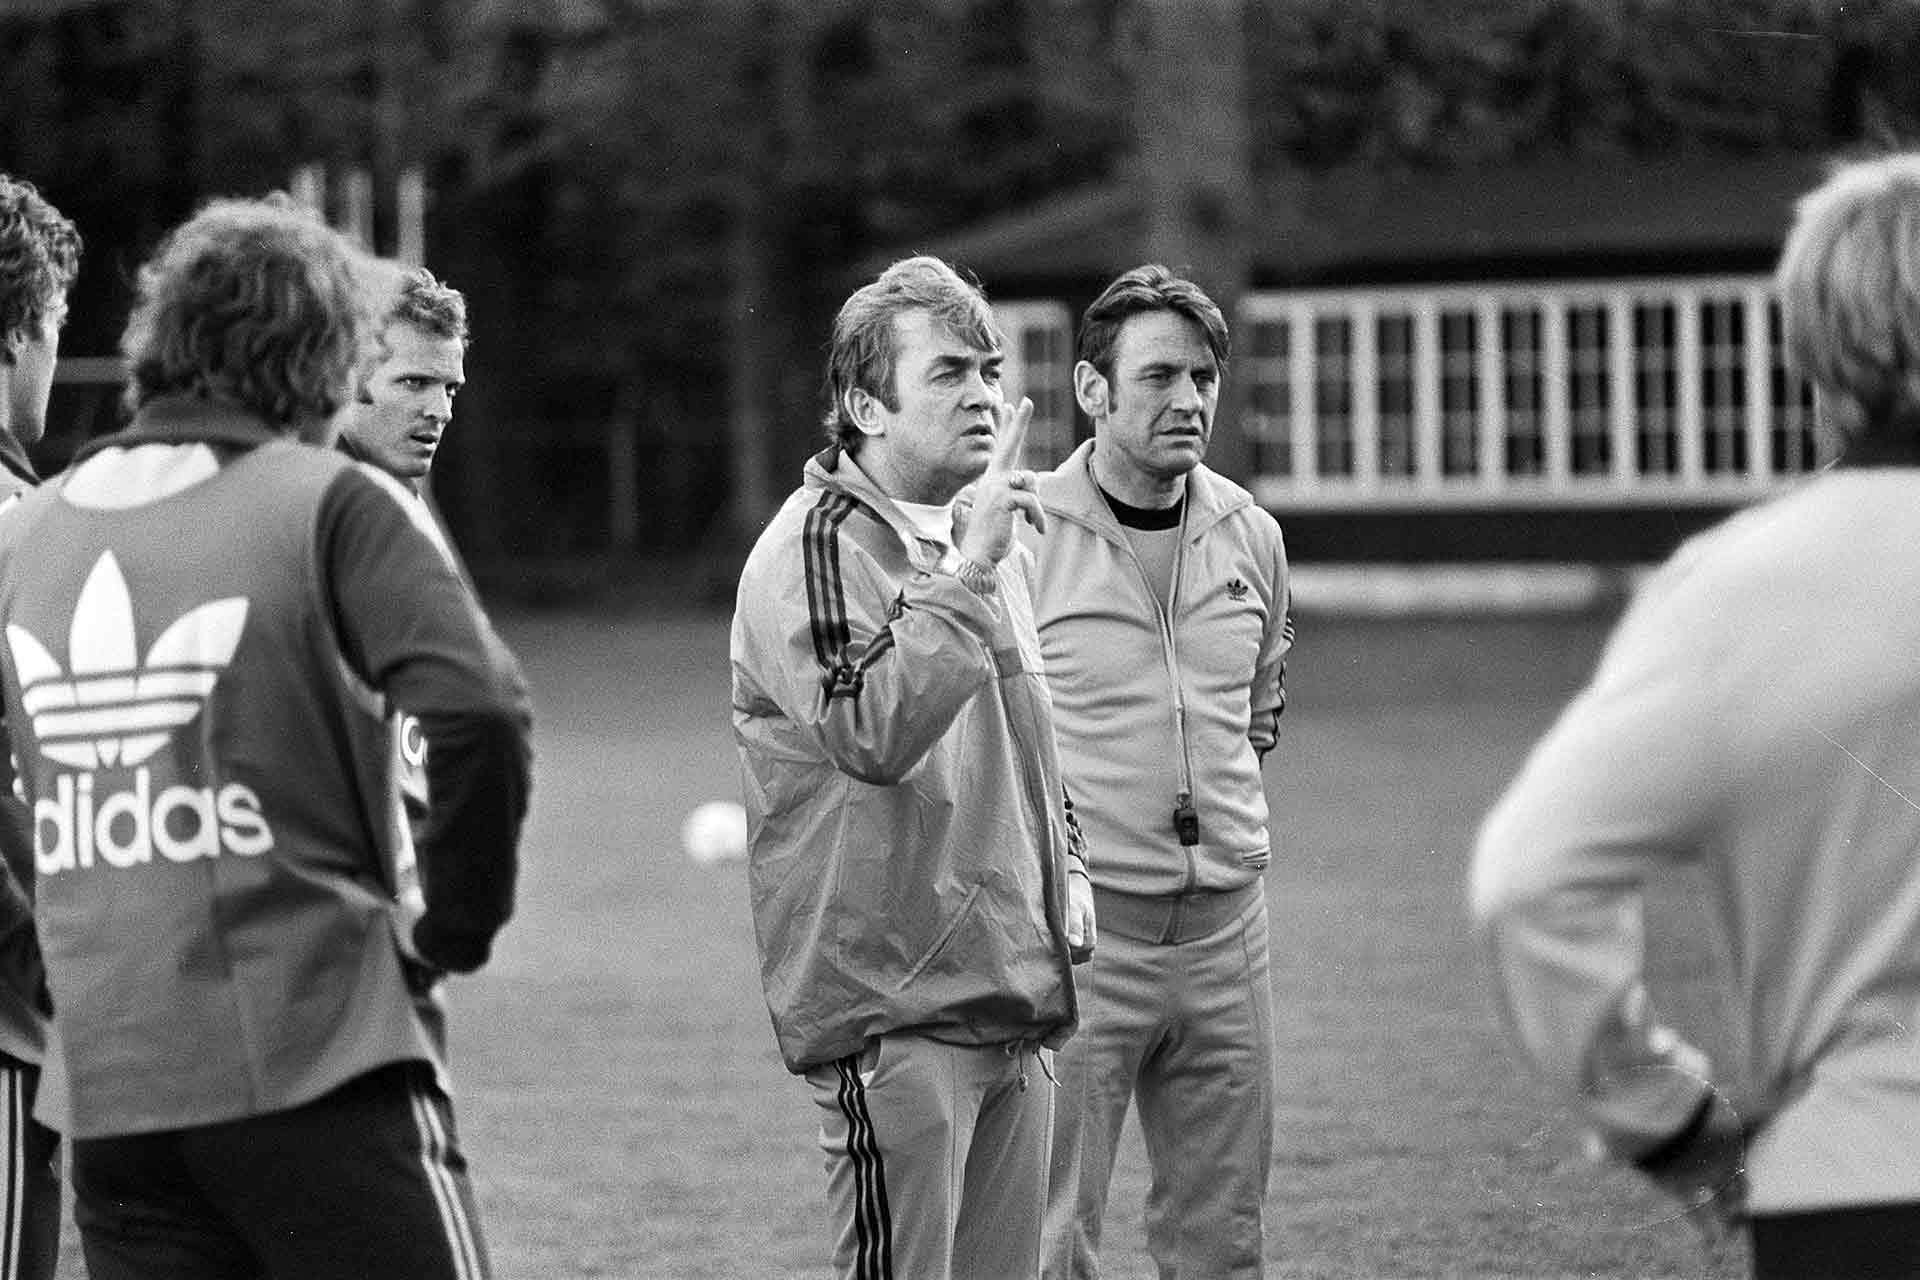 Coach Dutch national team at Zeist, Ernst Happel (Photo: Hans Peters / Anefo, Wikimedia Commons)